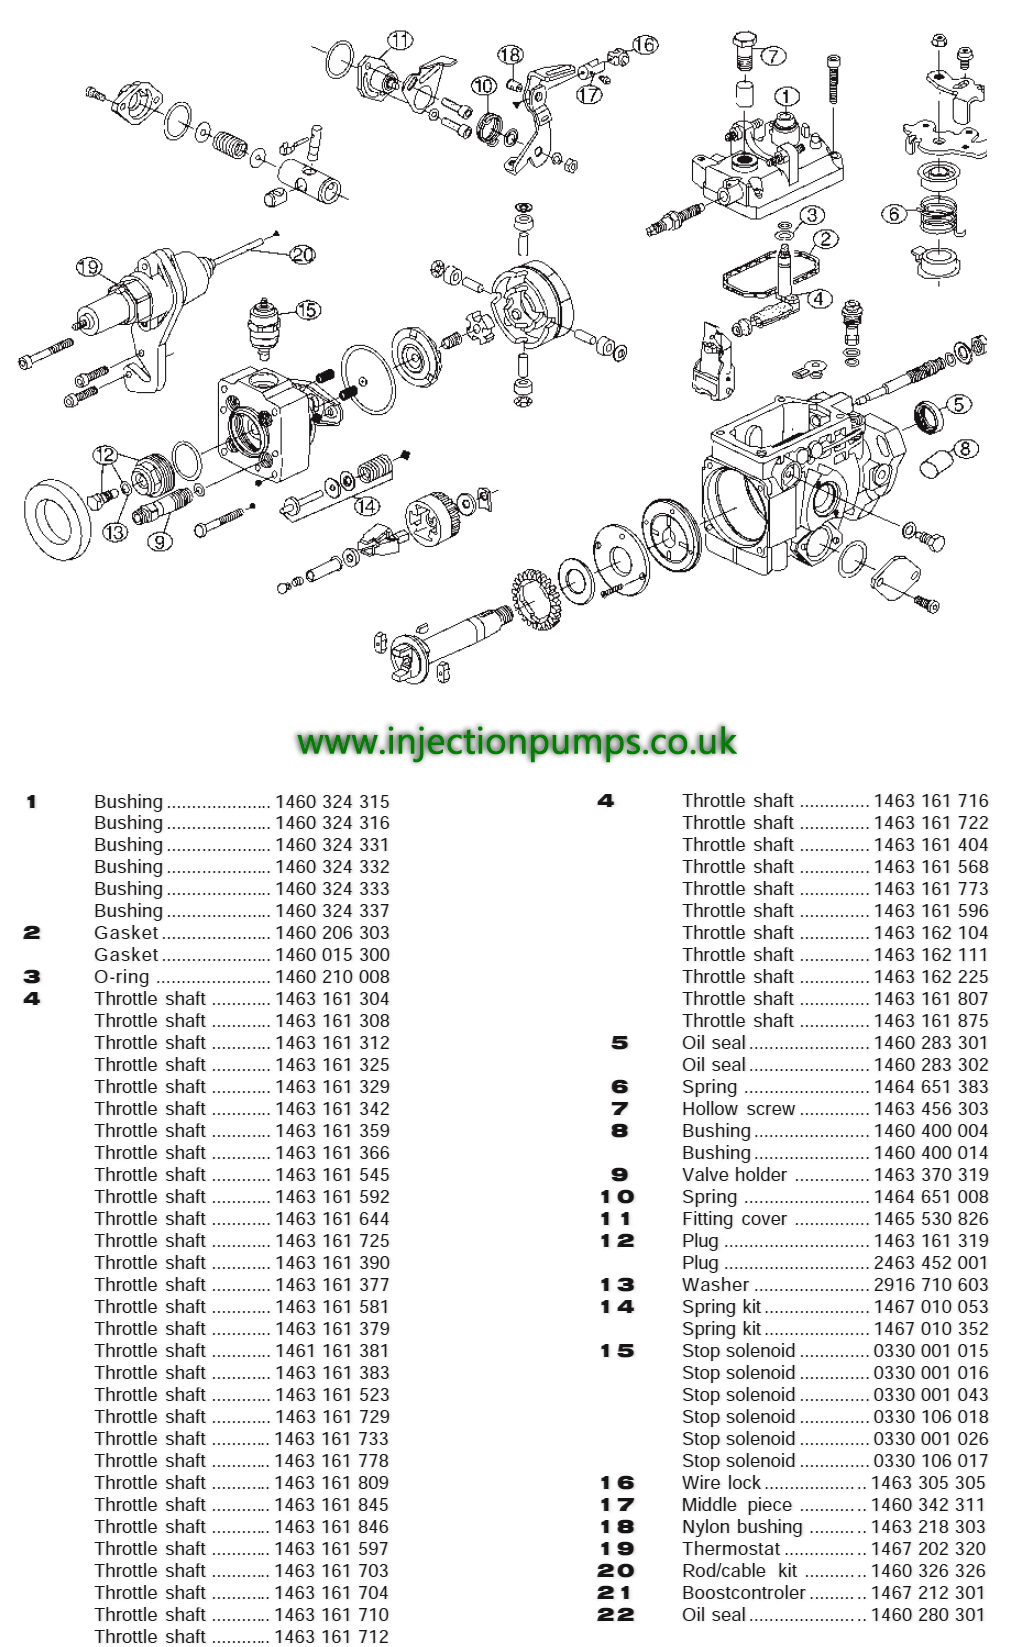 ford simms diesel injector pump diagram imageresizertool com cav fuel injection pump parts lucas cav fuel injection pump diagram